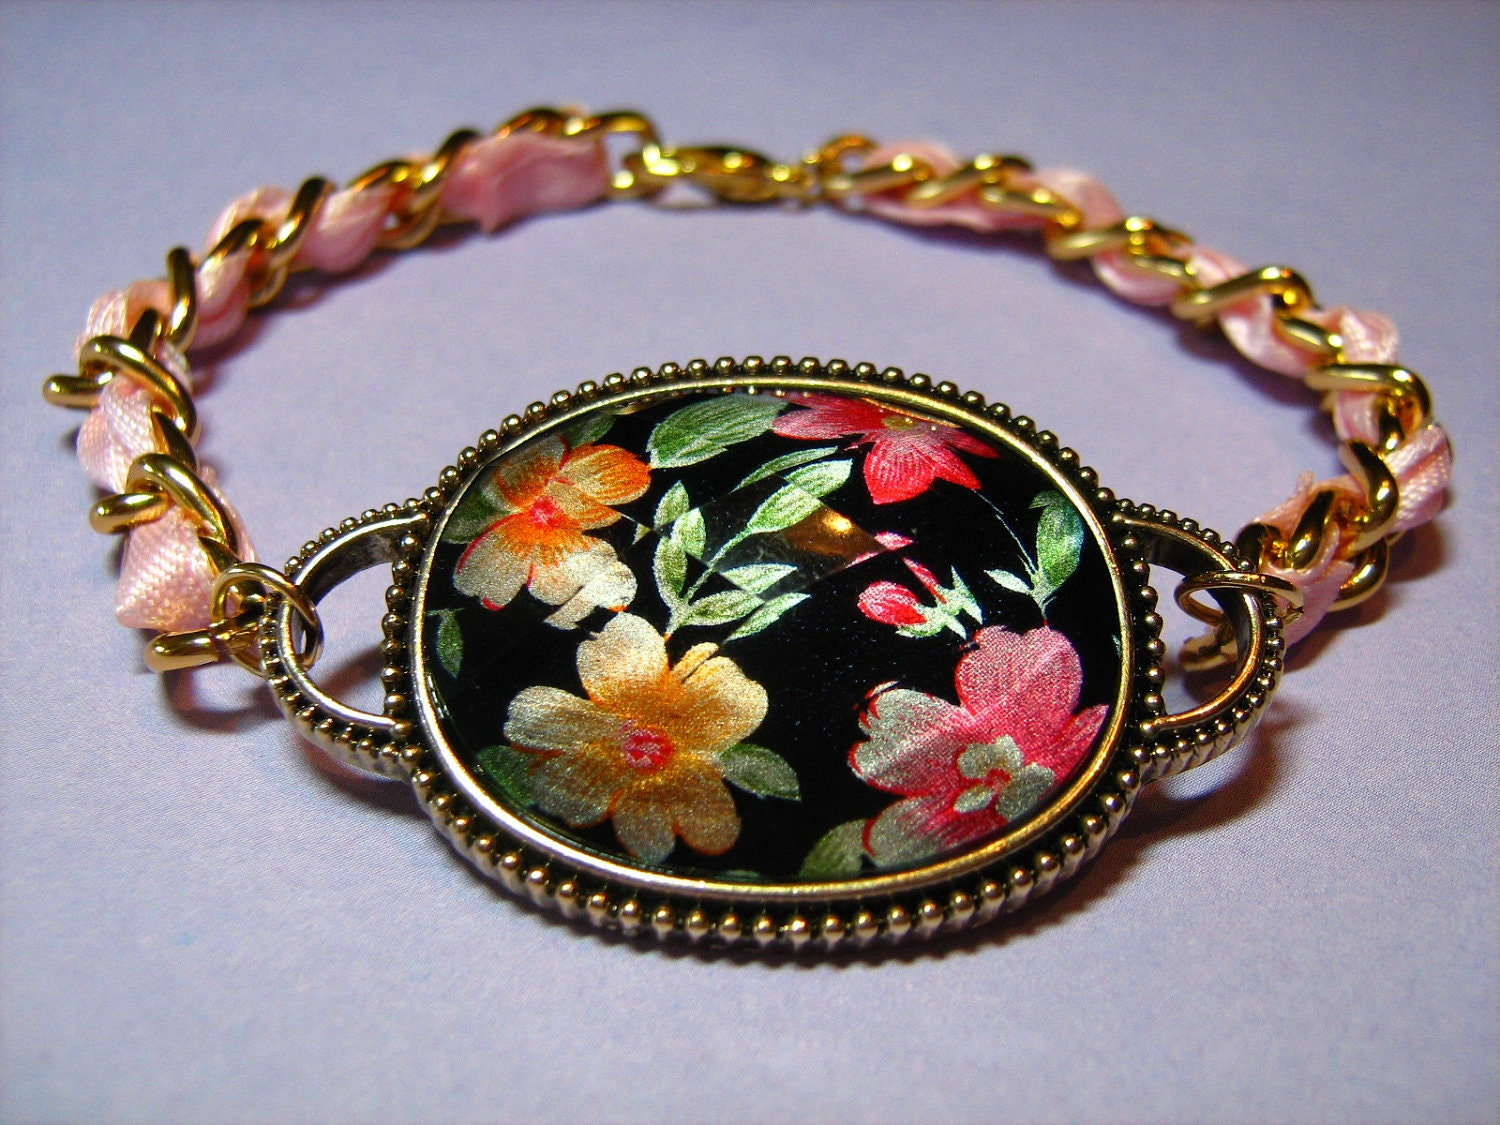 Floral Oval Pendant with a Pink Satin Ribbon and Goldtone Chain